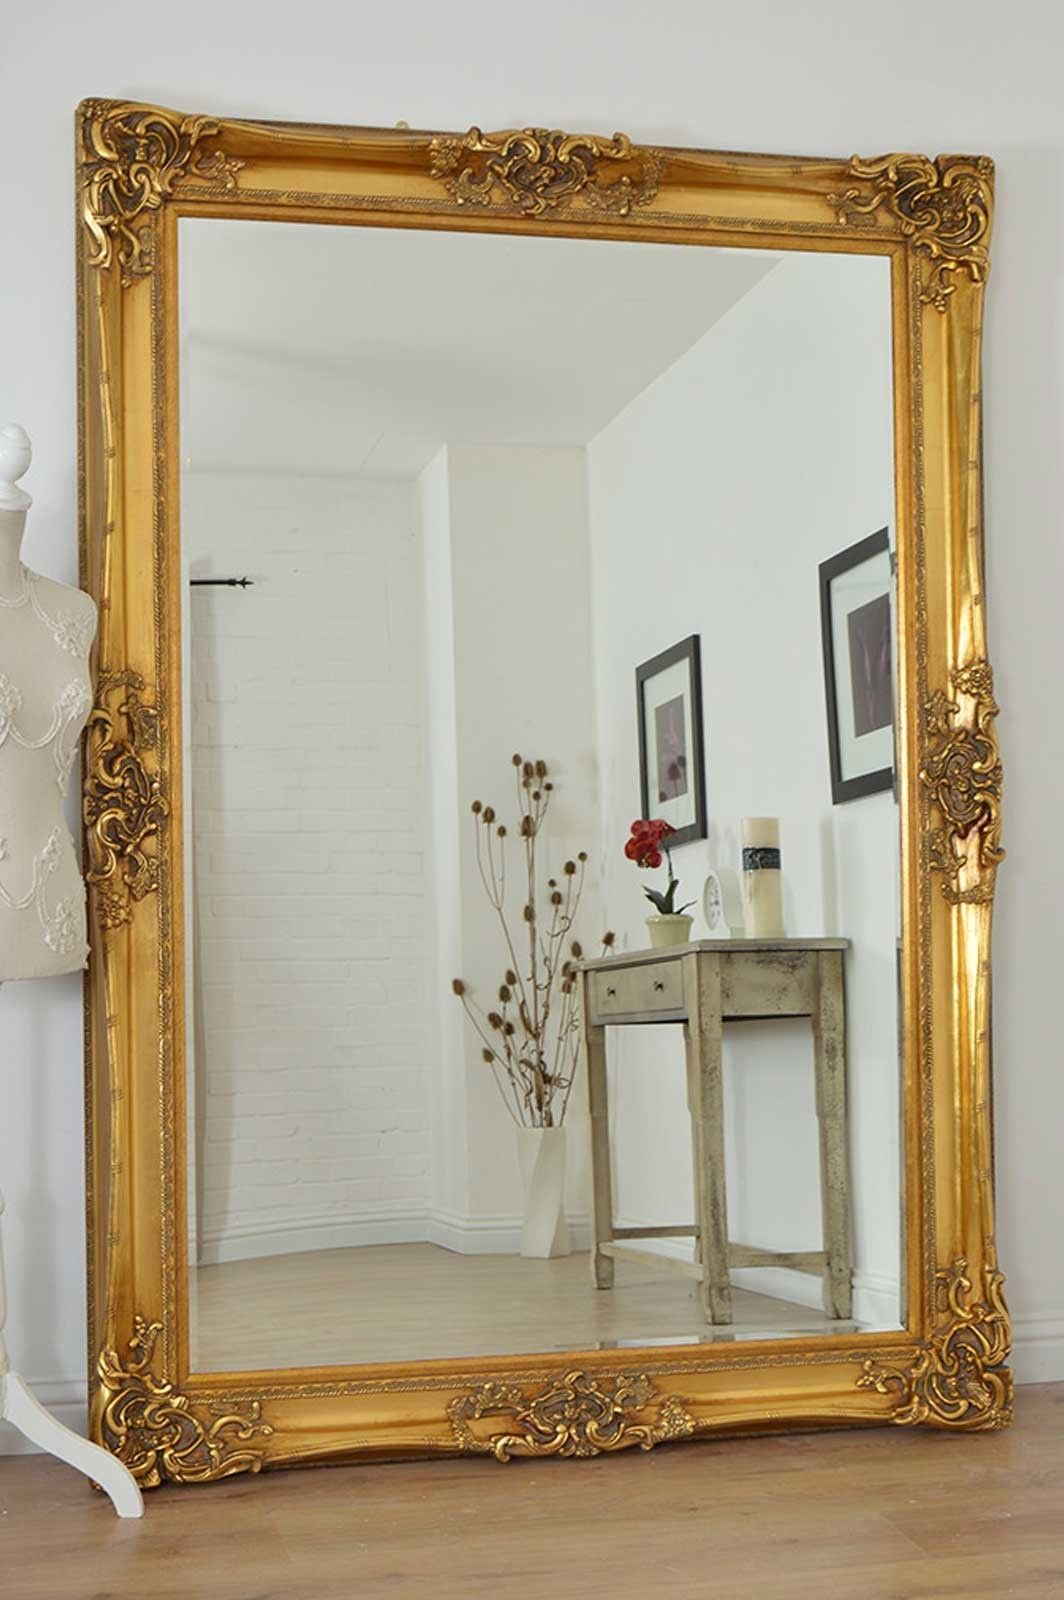 Wall Mirror Gold Frame | Furniture, Art and Home Accents | Pinterest ...